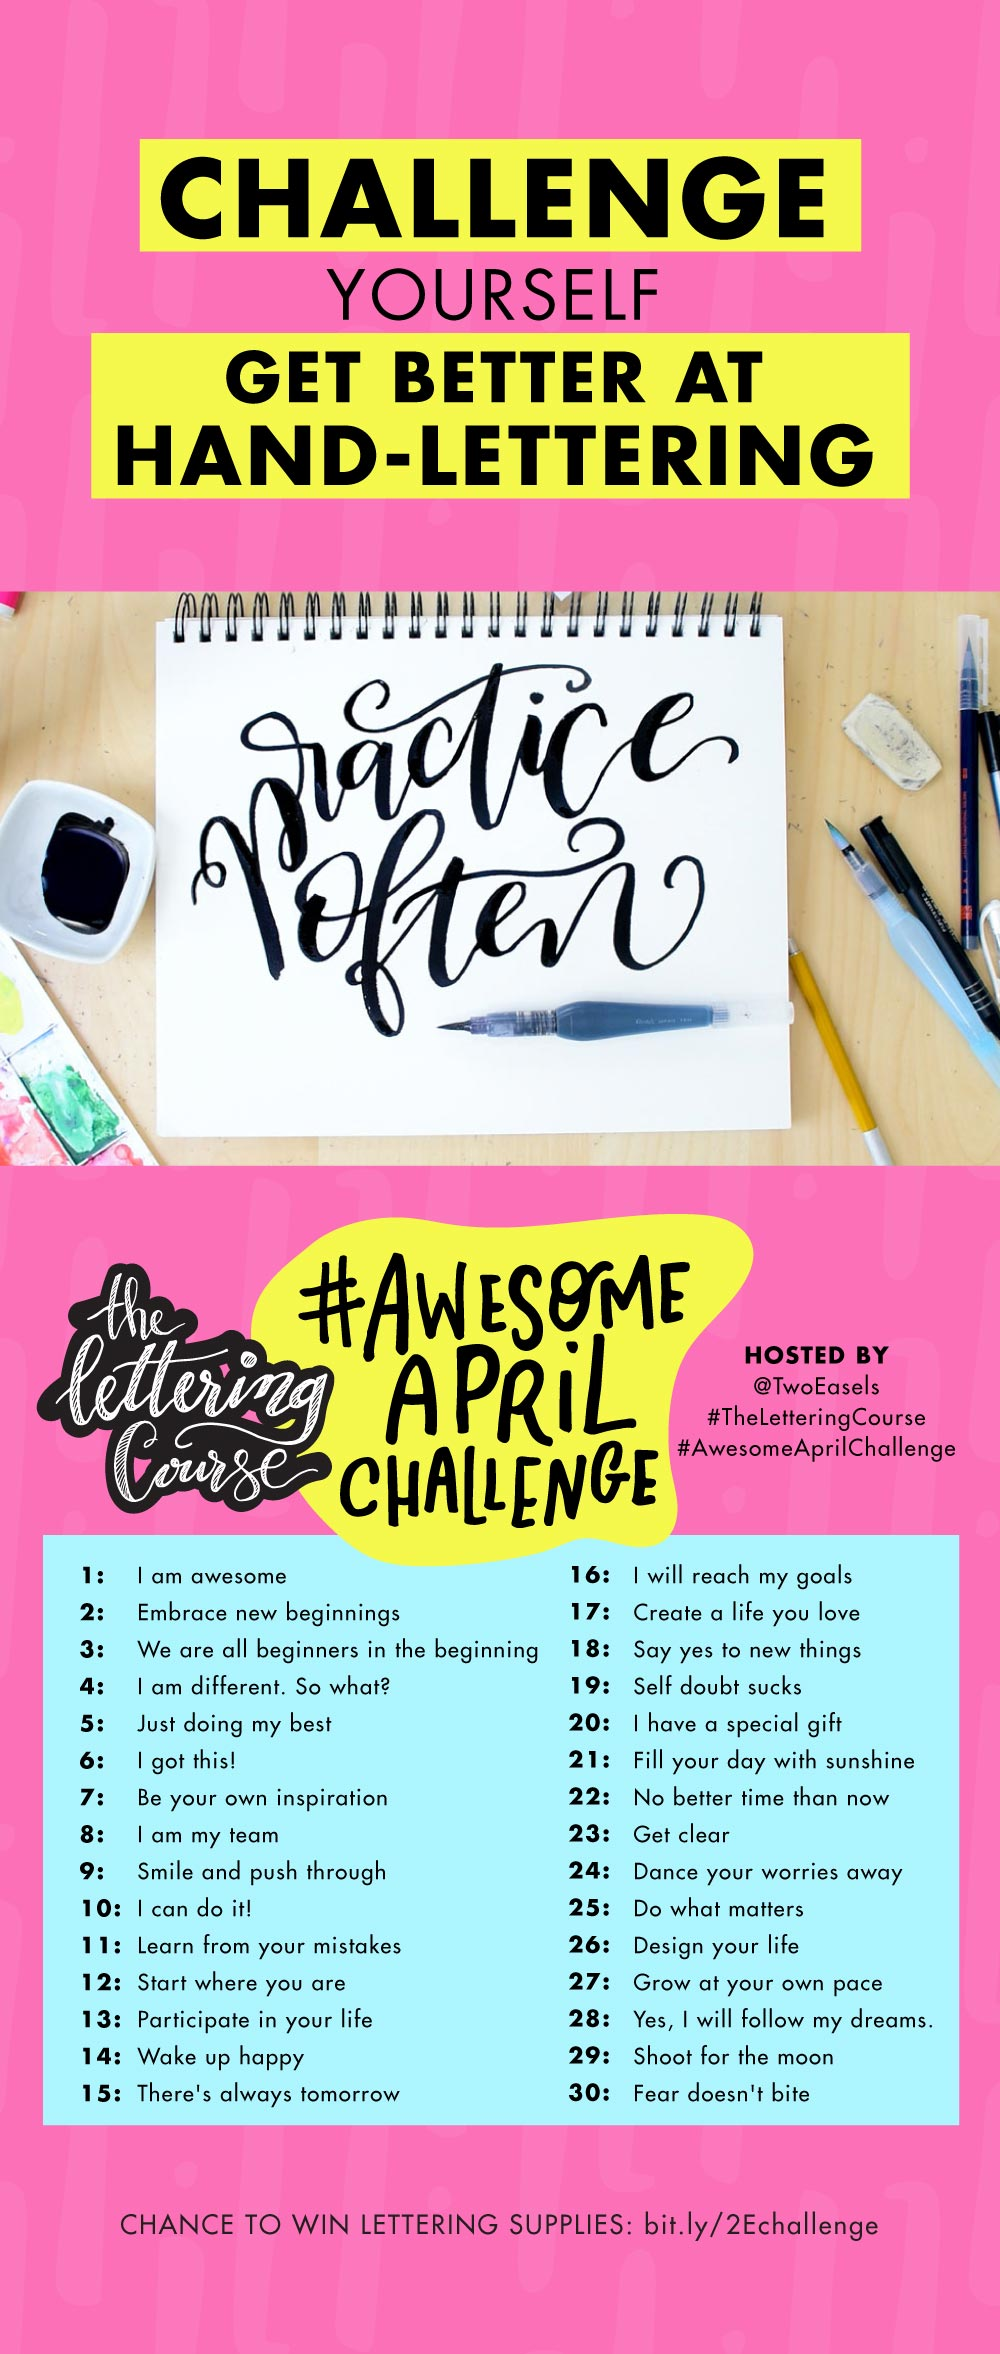 Join the fun on Instagram in this monthly challenge, this month it's #AwesomeAprilChallenge is about YOU being AWESOME!